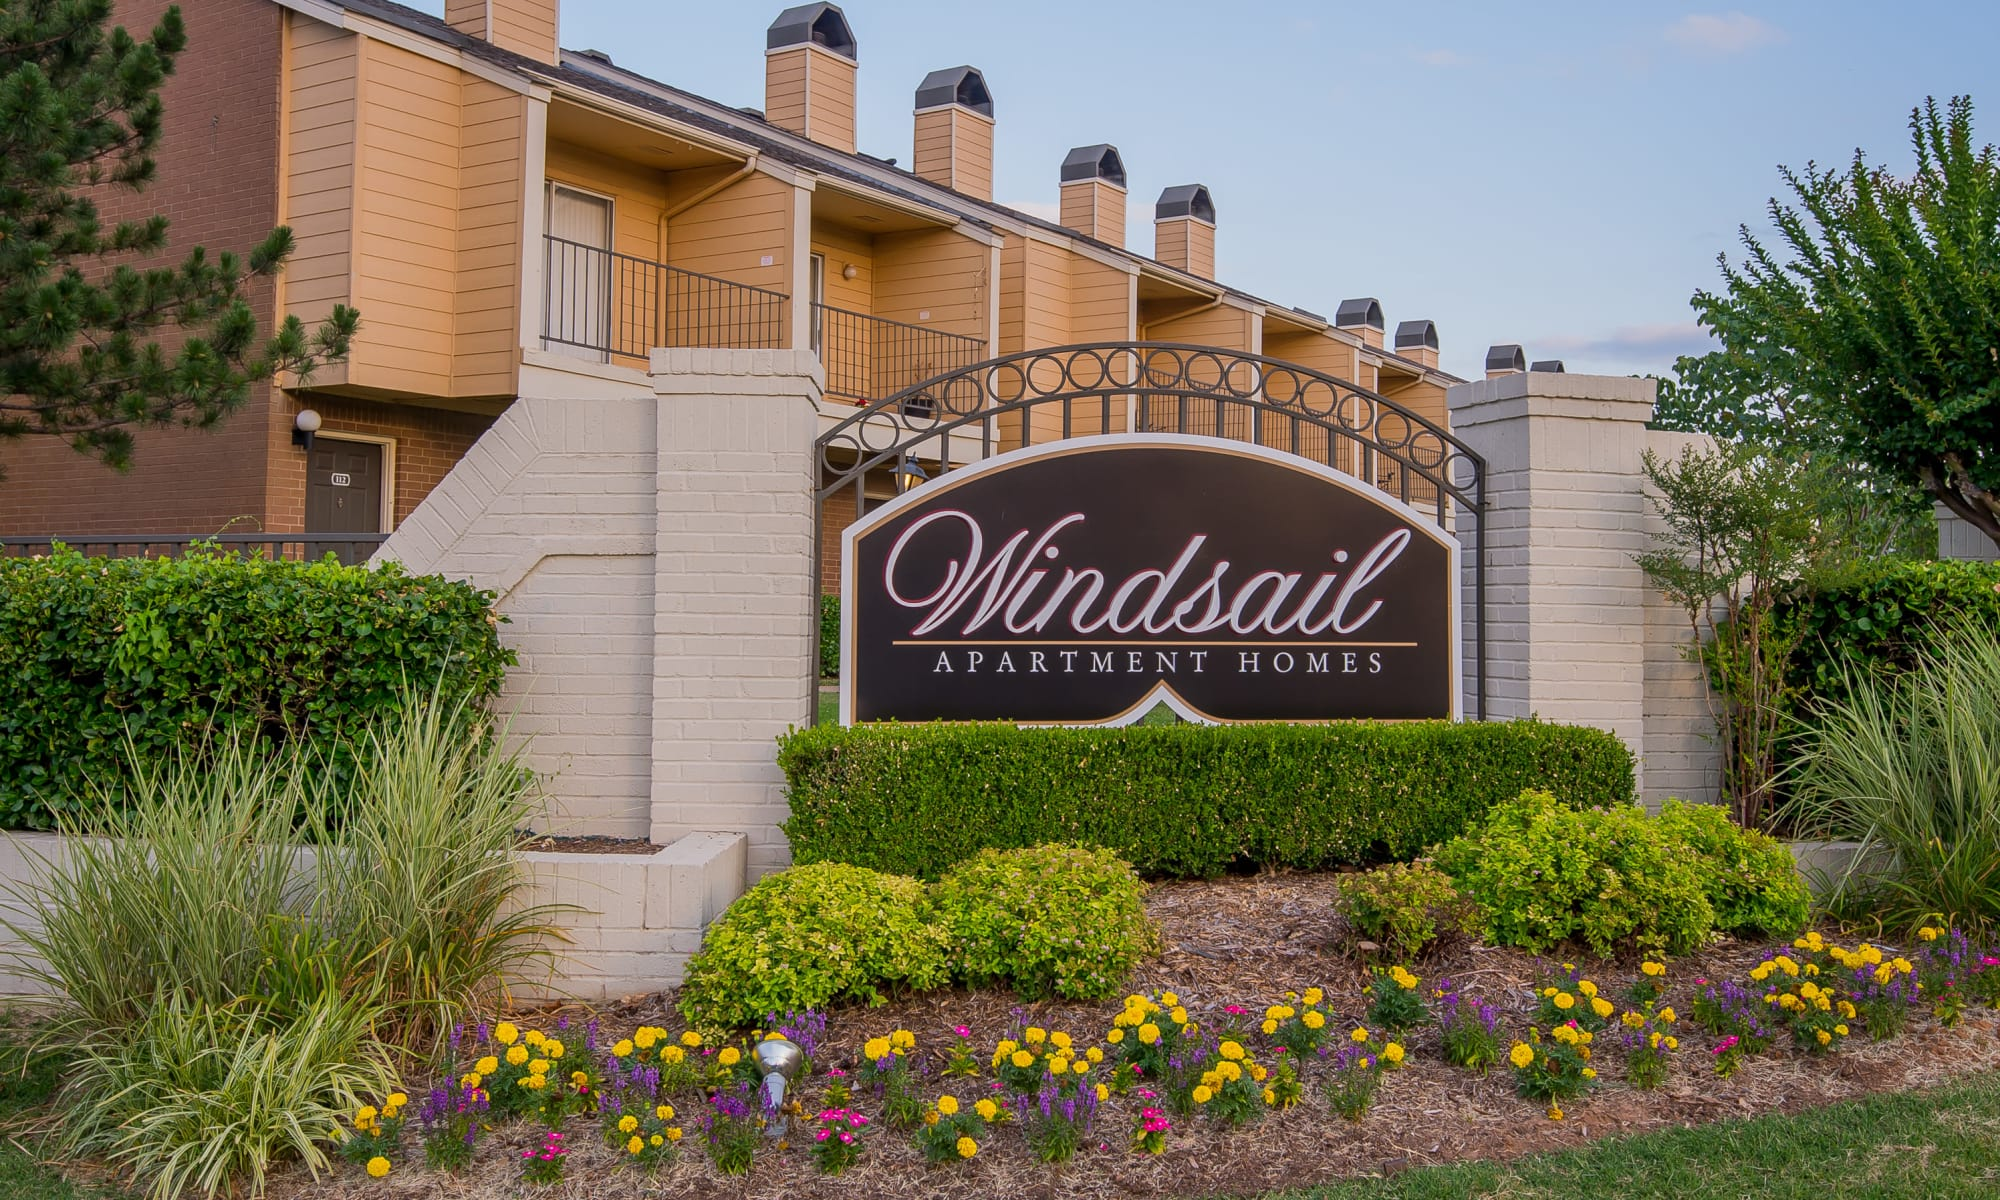 Windsail Apartments in Tulsa, Oklahoma